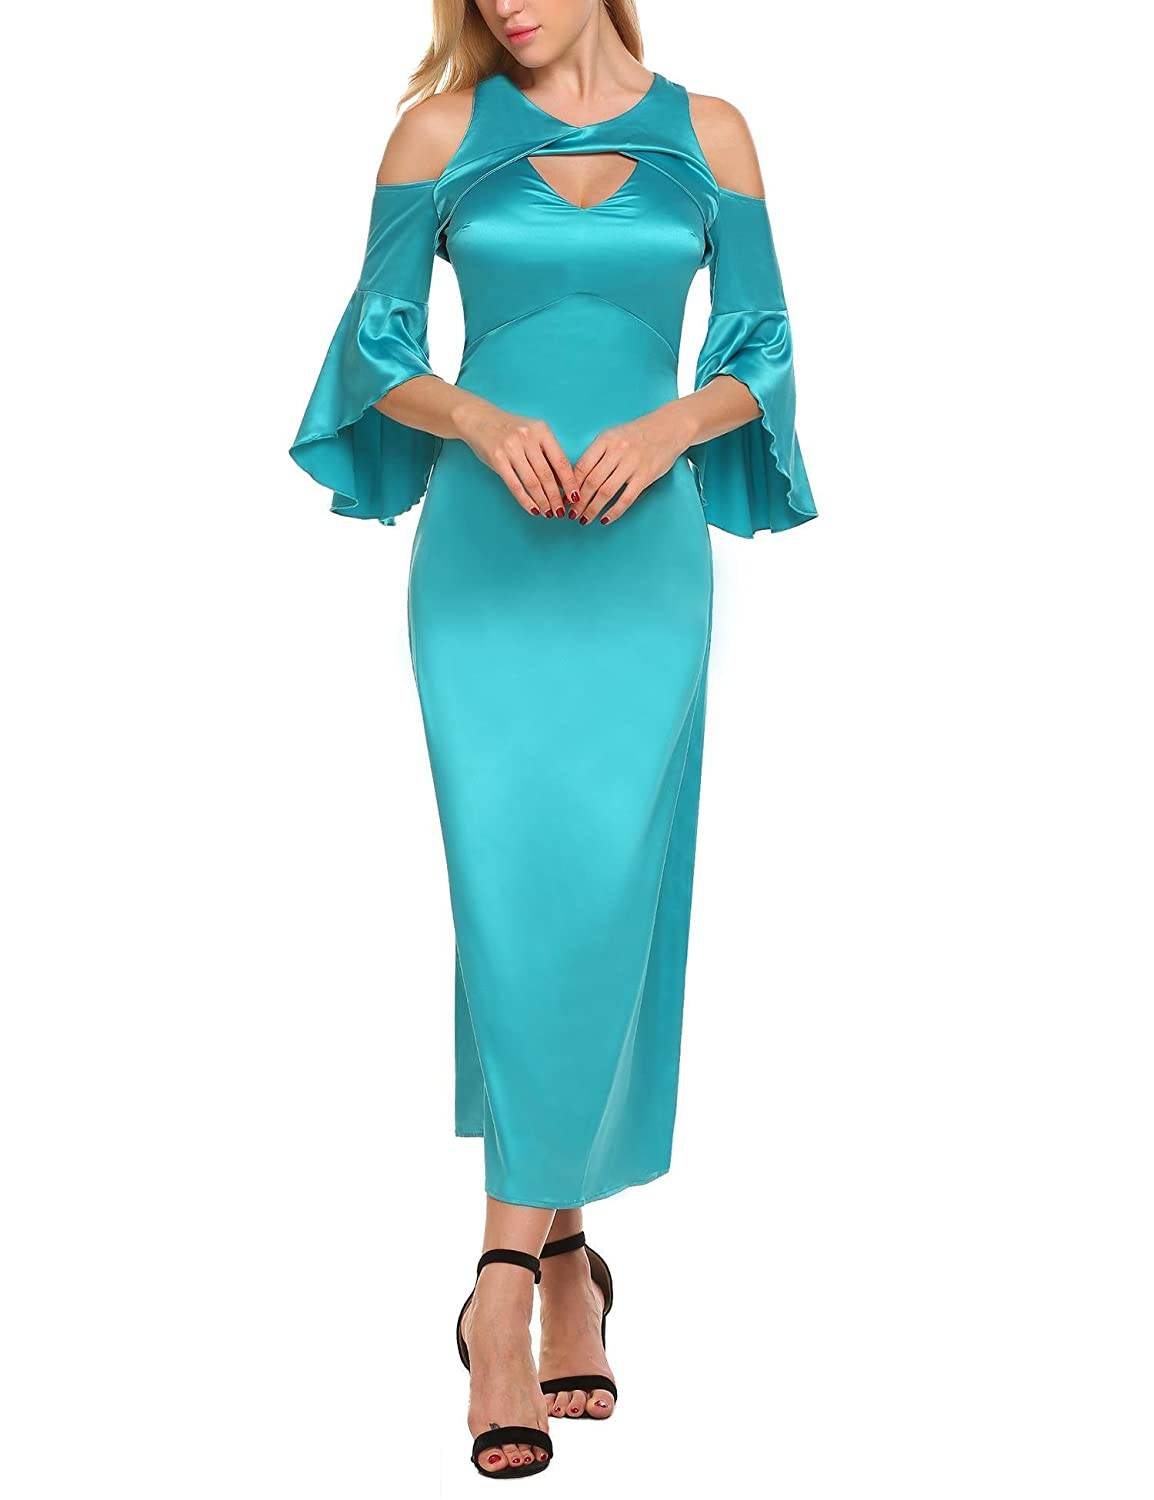 3fd6b2d552f6 Elegant and sexy style, vintage flare bell sleeve, 3/4 sleeve and keyhole  design can easily catch people's eyes. Scoop Neck, 3/4 flare Sleeve; Open  shoulder ...